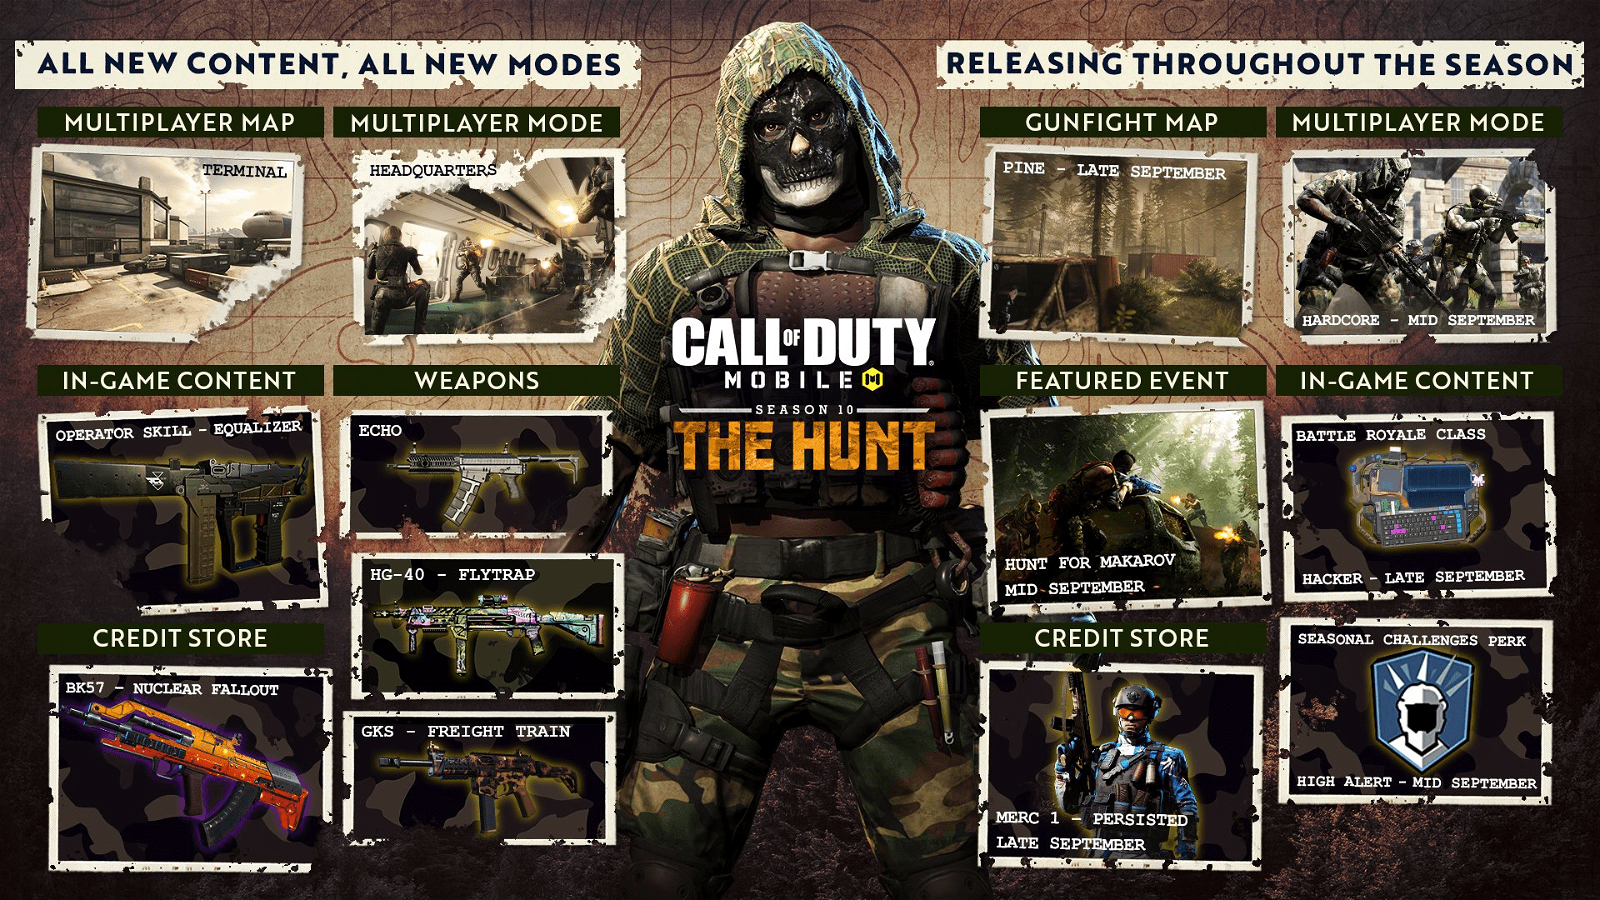 COD Mobile Season 10: The Hunt | Headquarters Mode, Terminal and Pine Maps, Hacker Class in BR Mode 1